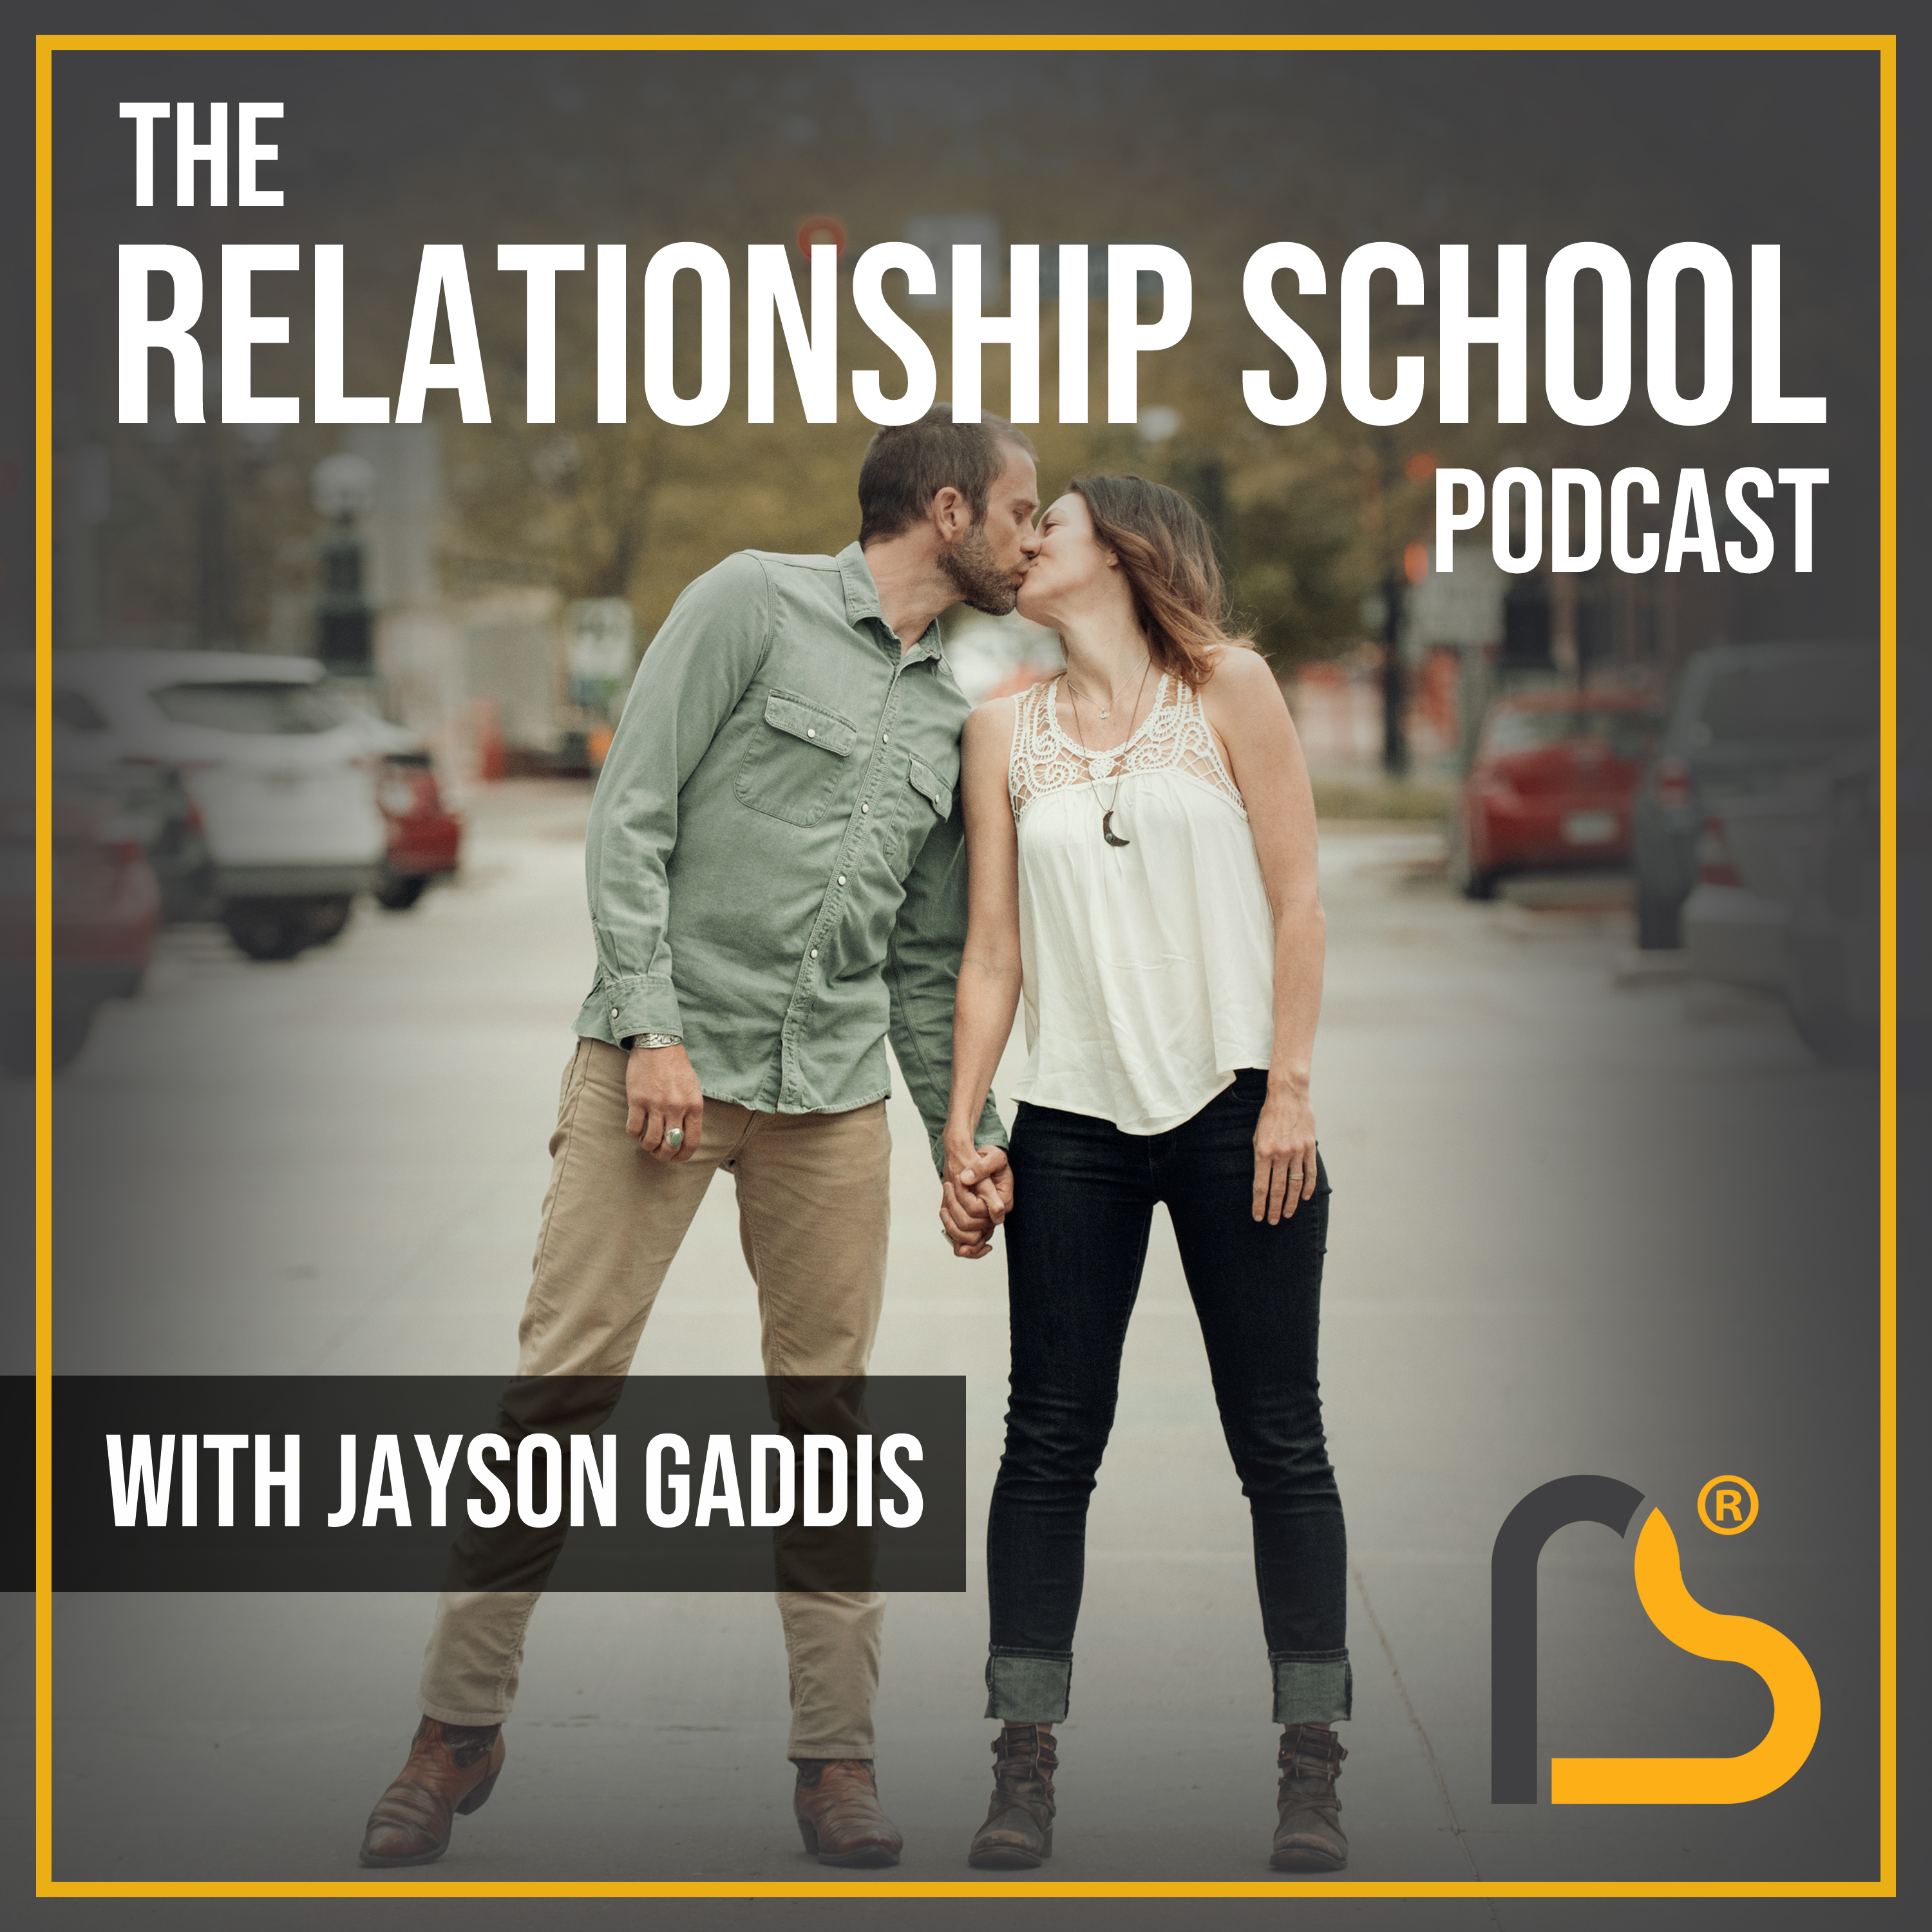 The Relationship School Podcast - The 2 Most Common Reasons Relationships End - 270